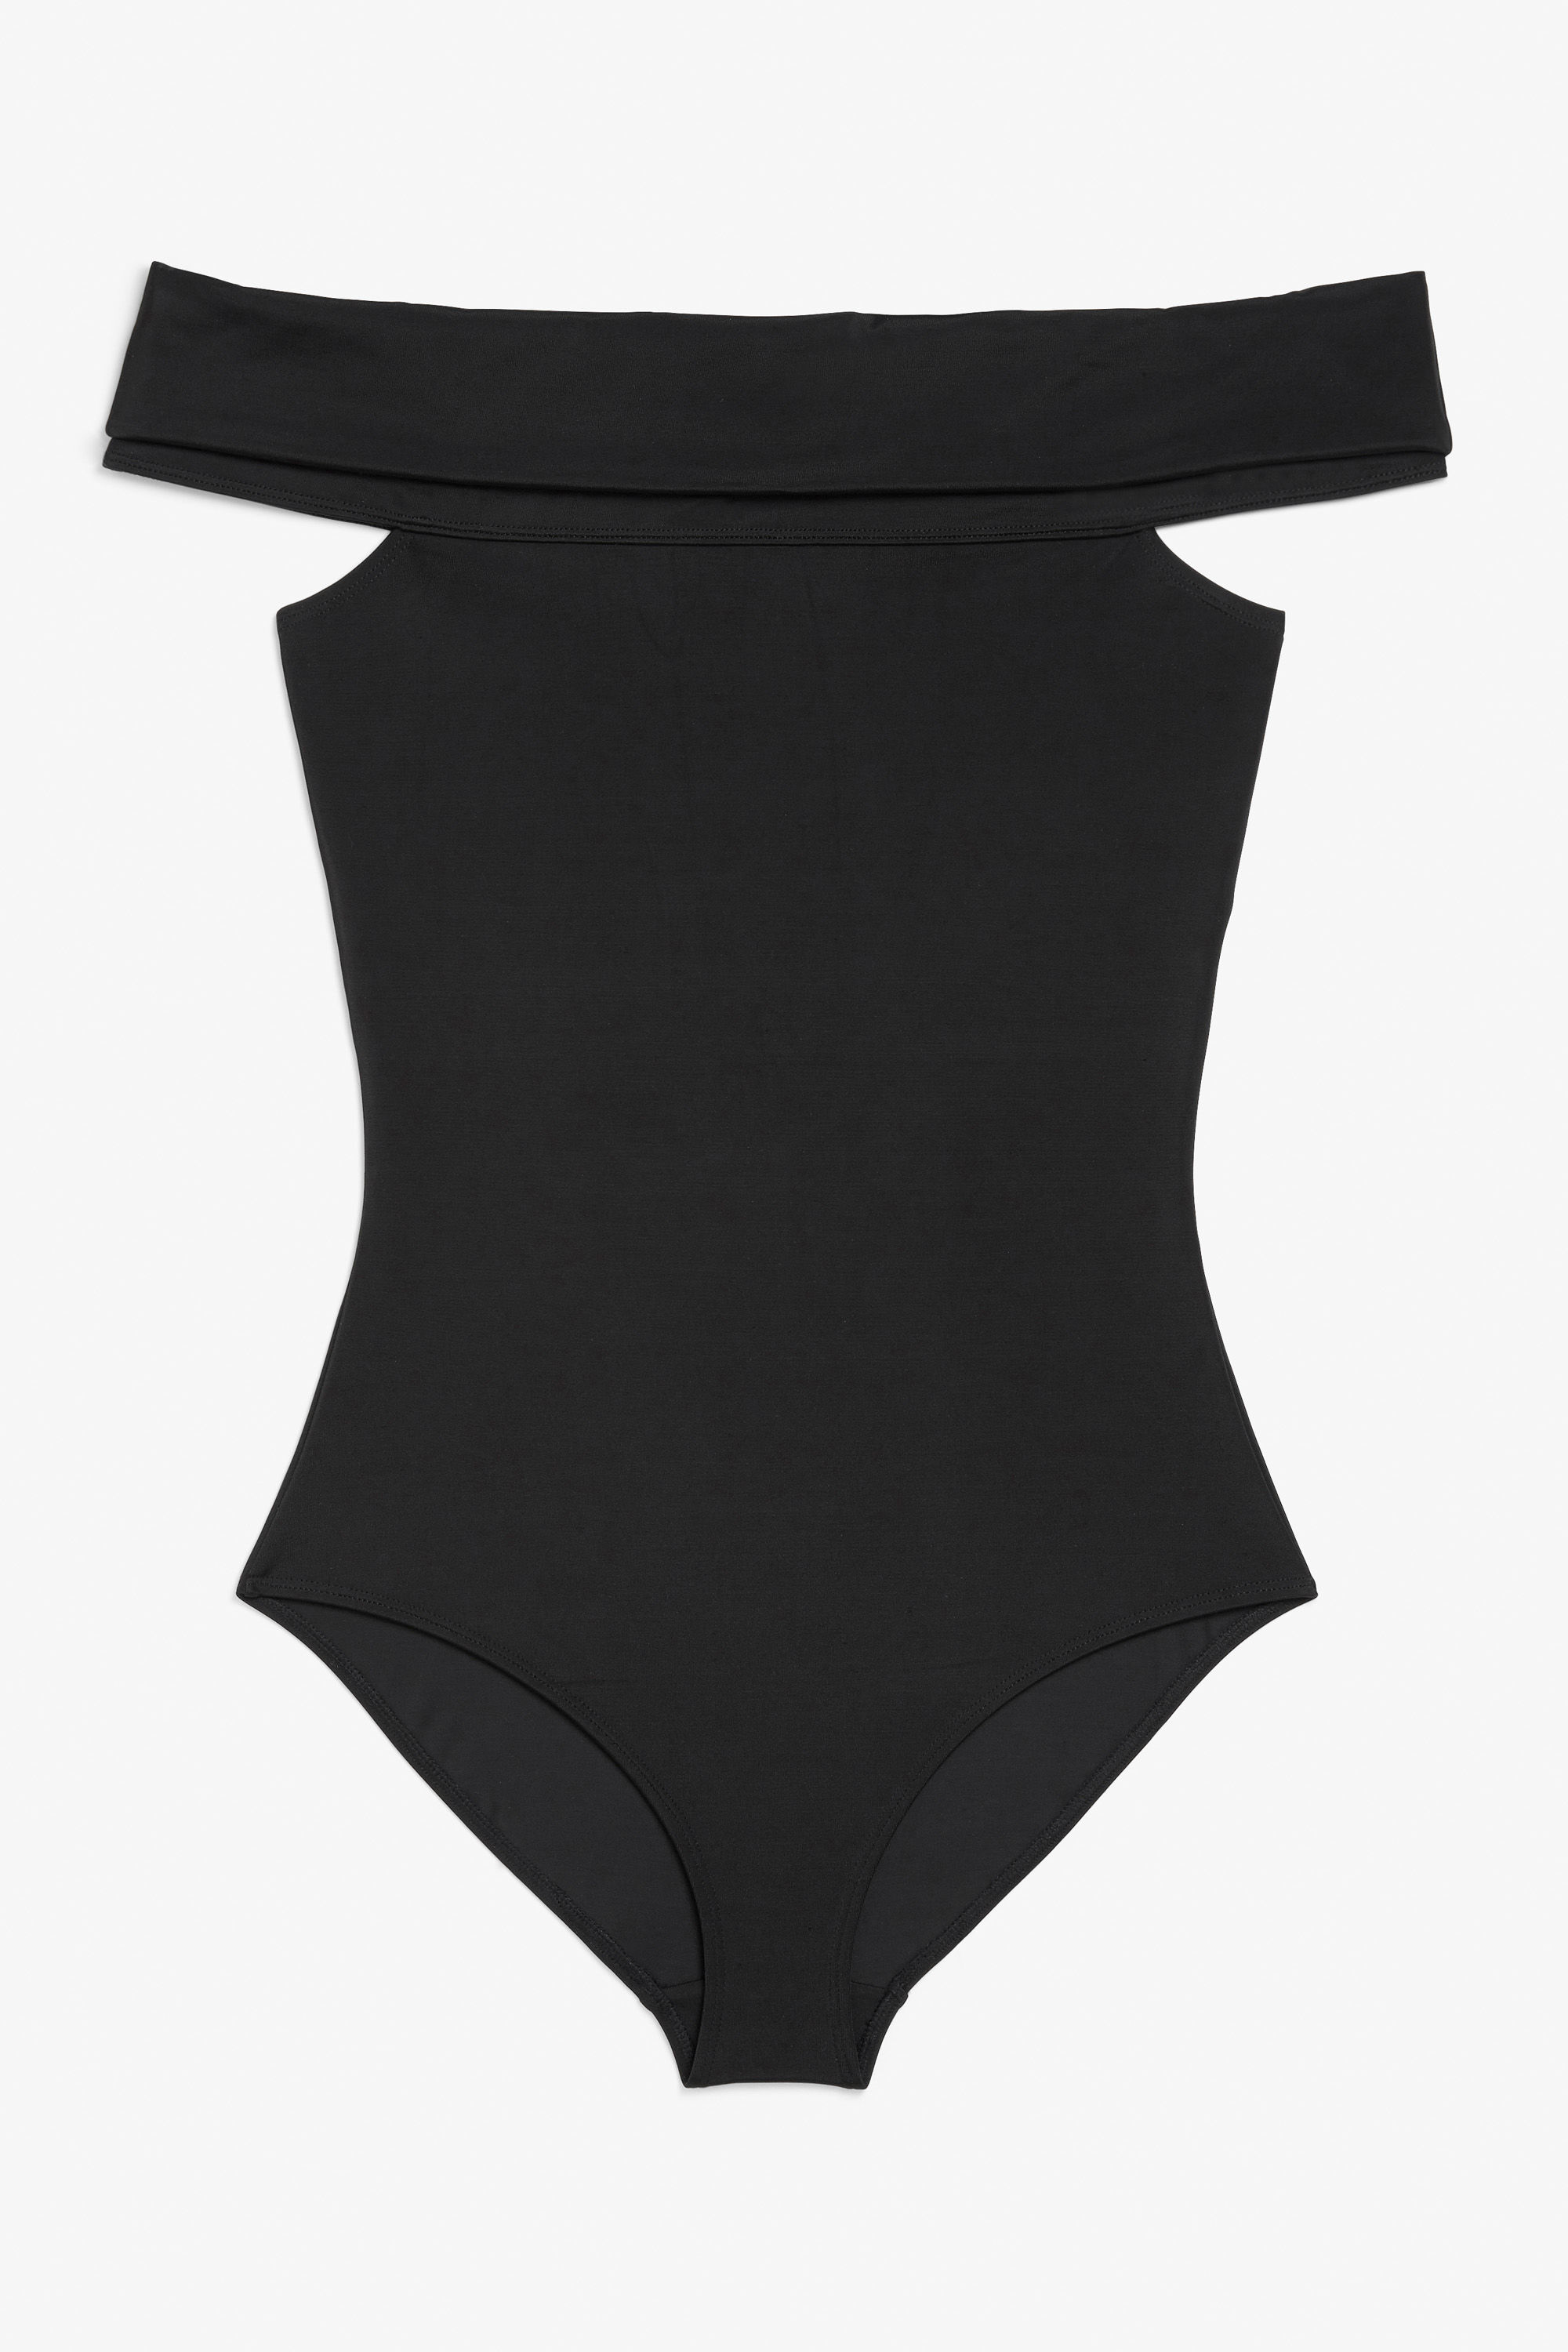 Monki cares Off-the-shoulder swimsuit £30